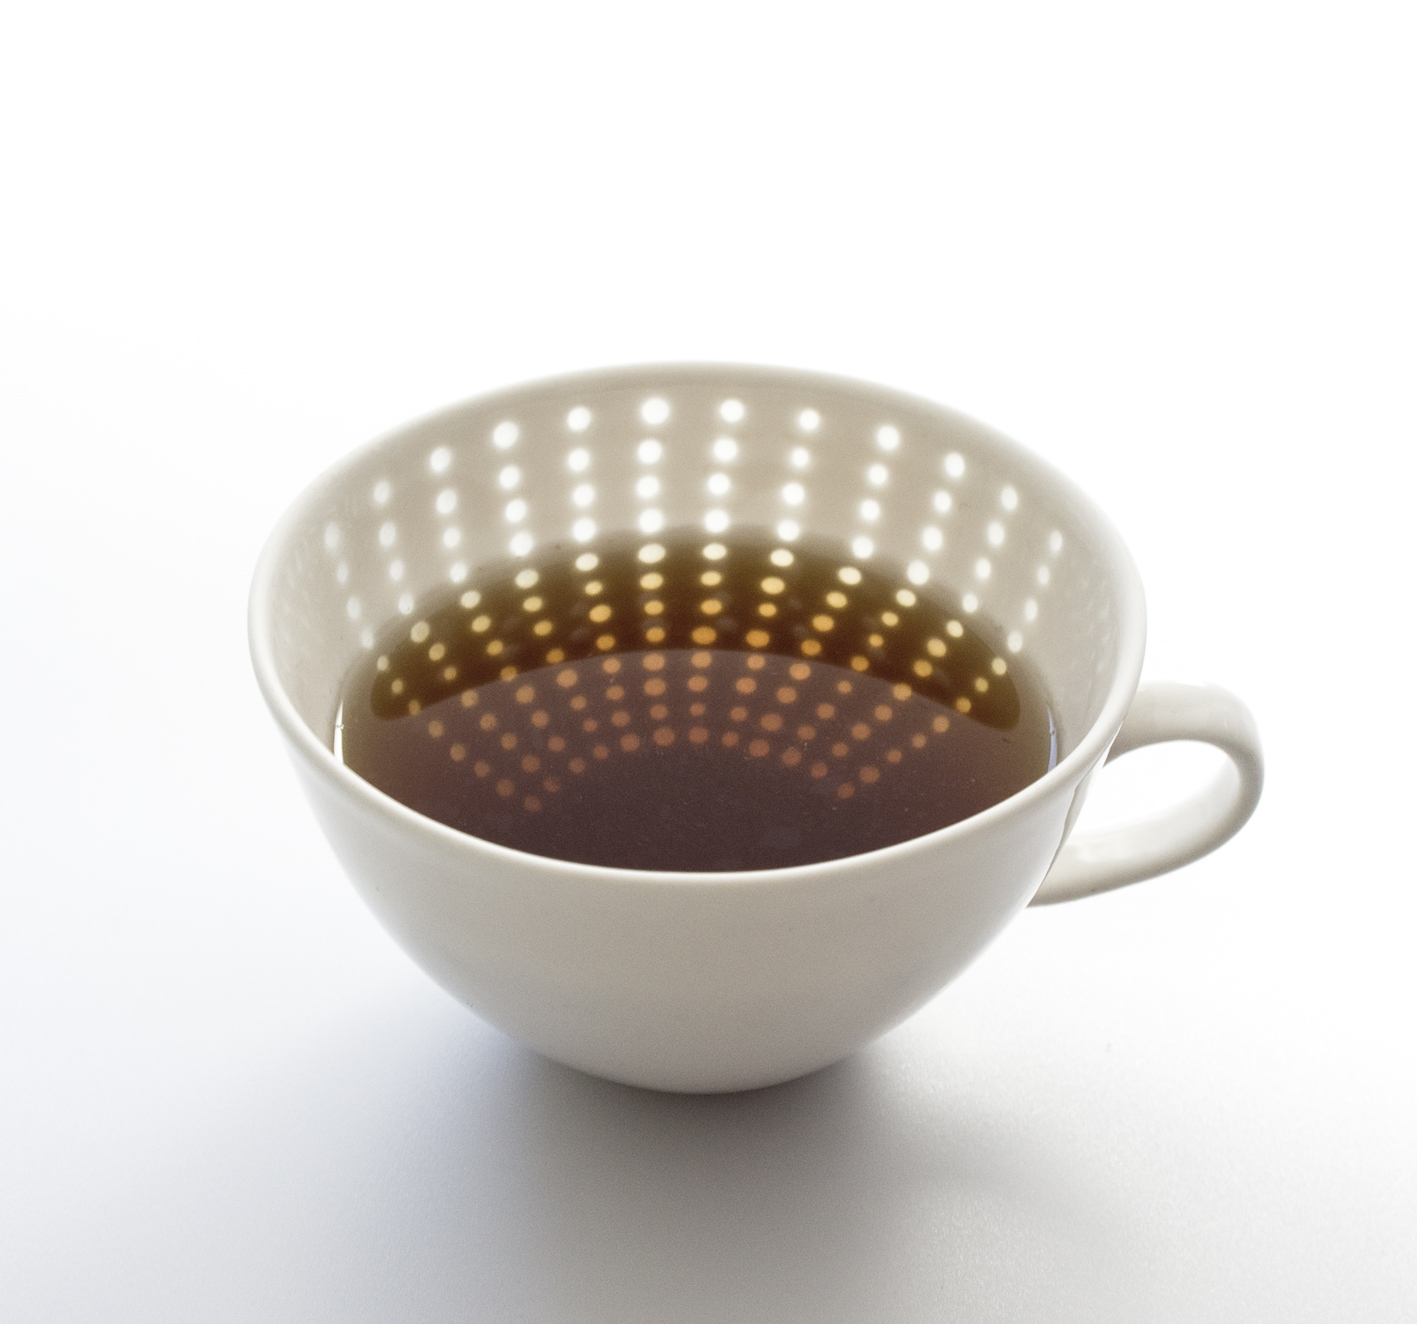 Teacup with Block pattern